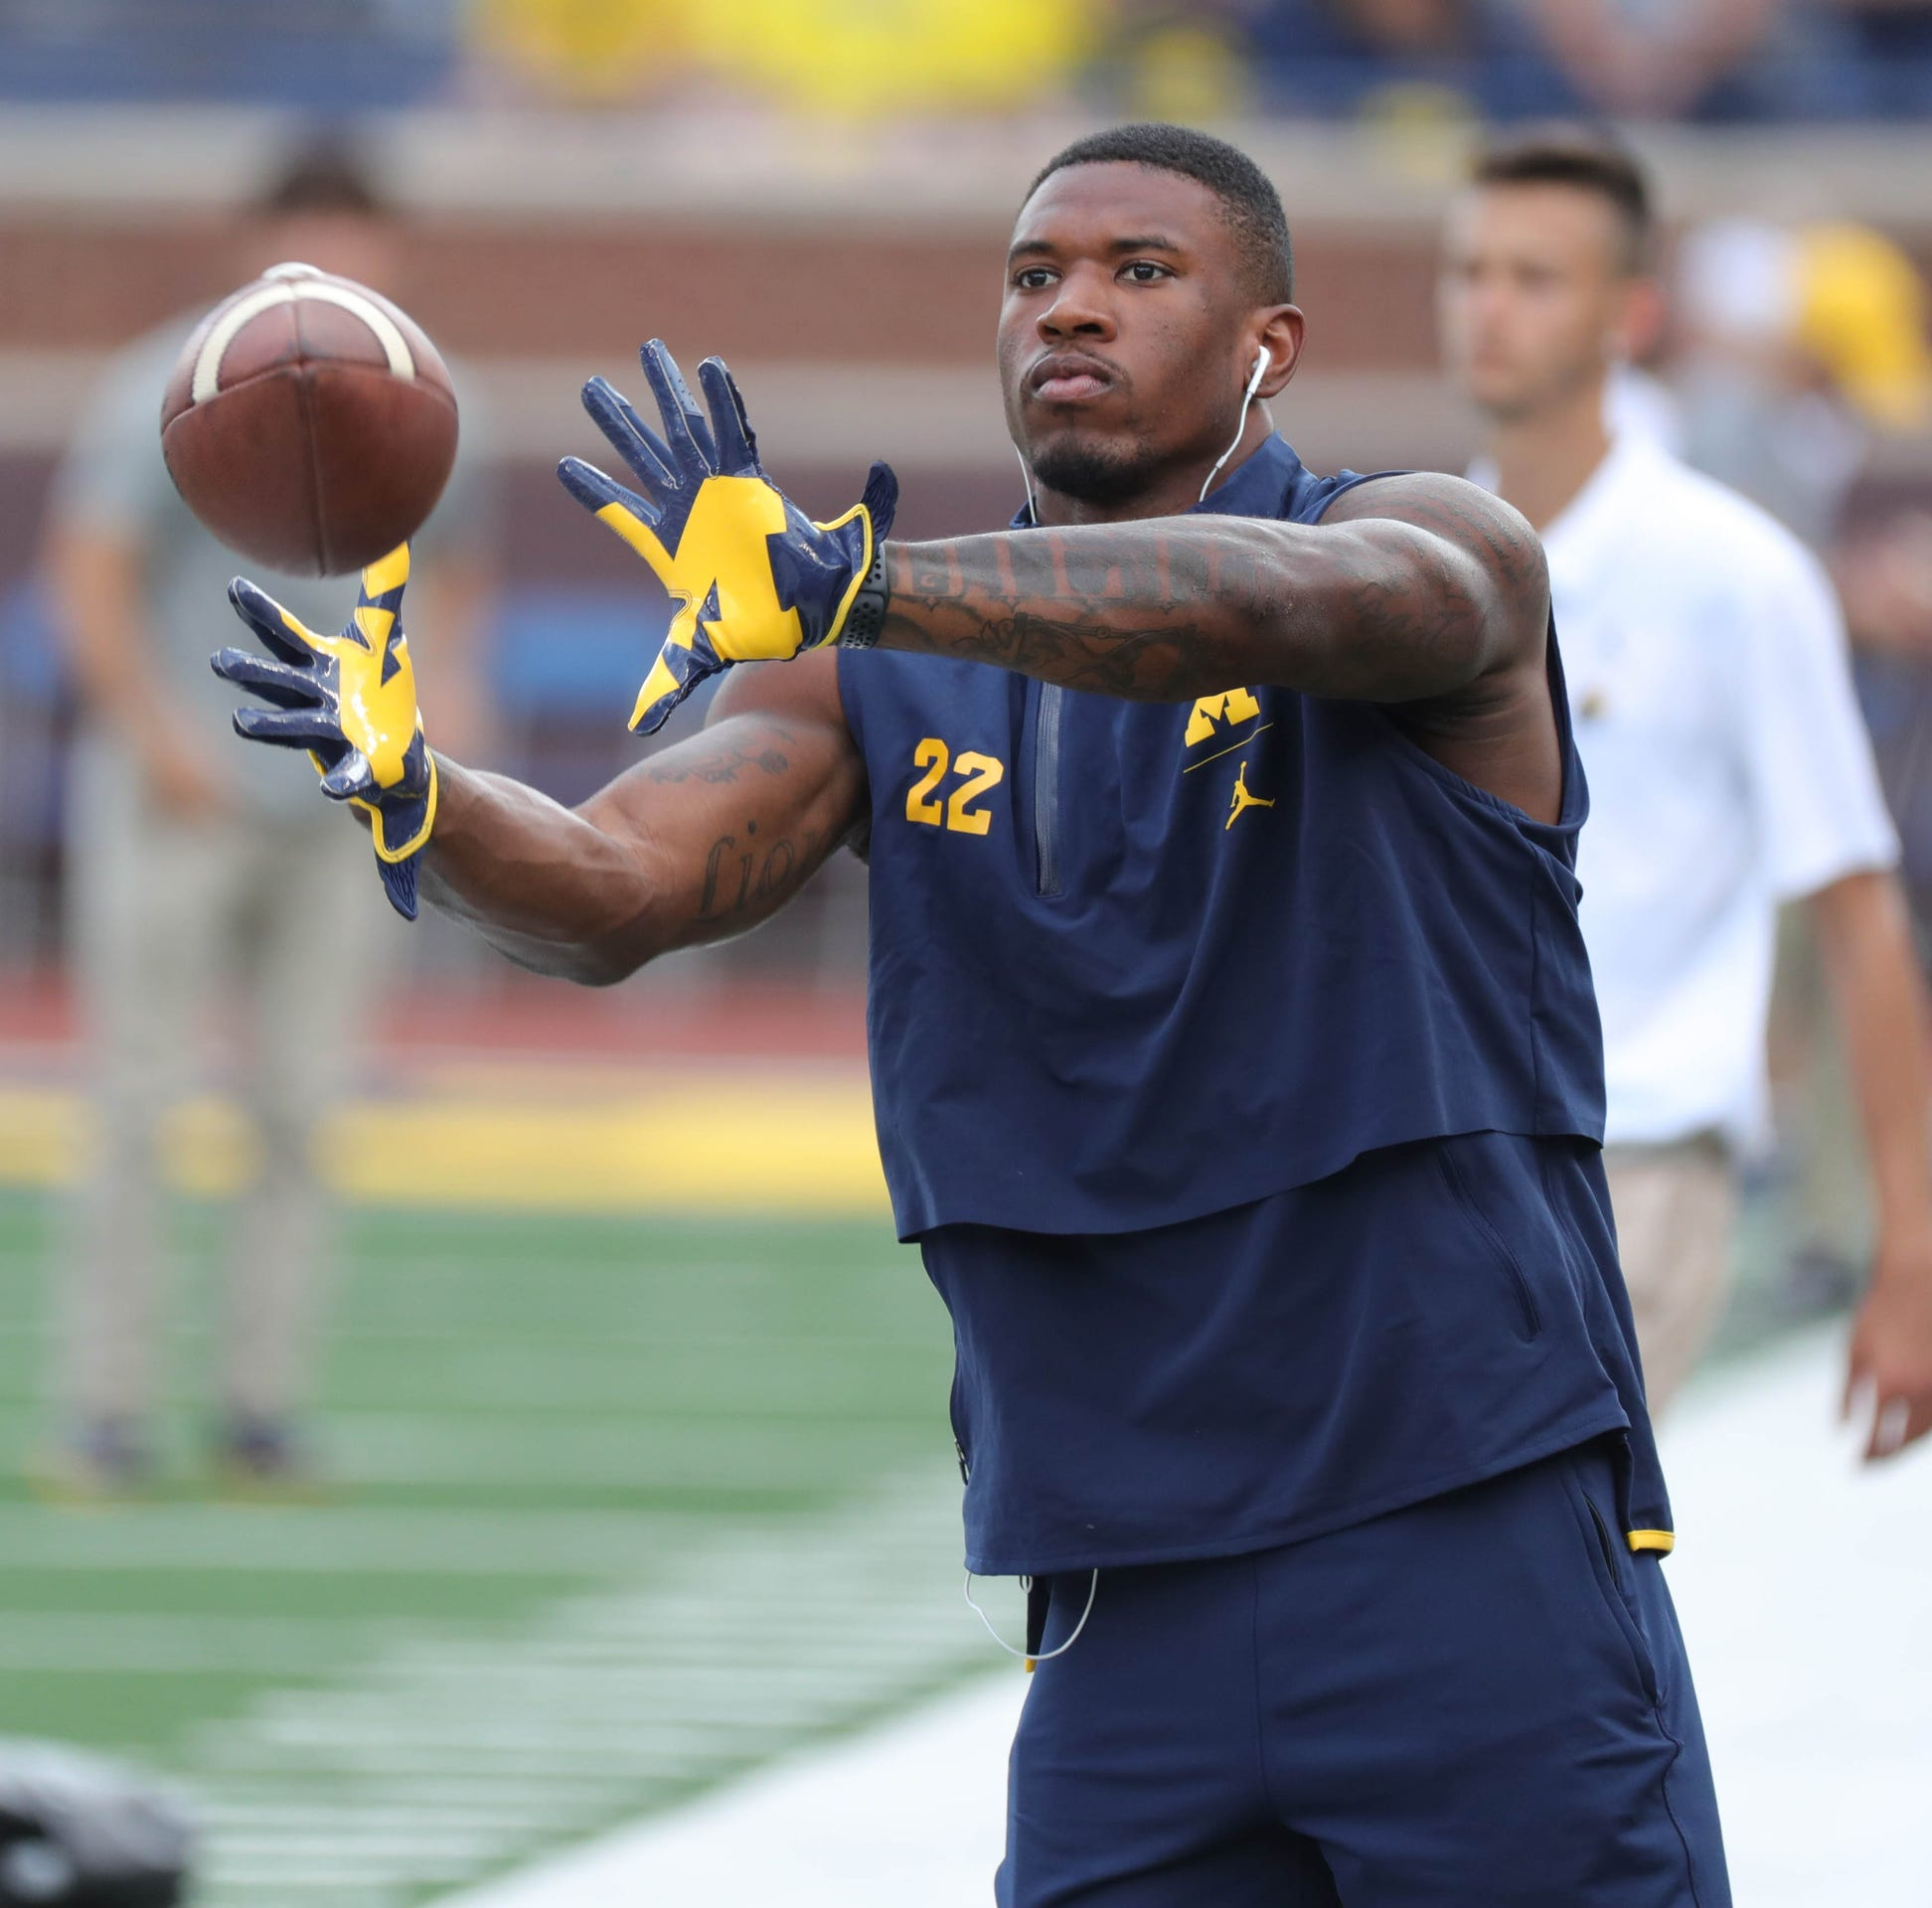 Michigan football's Karan Higdon, Chris Evans expected to play on Sat.